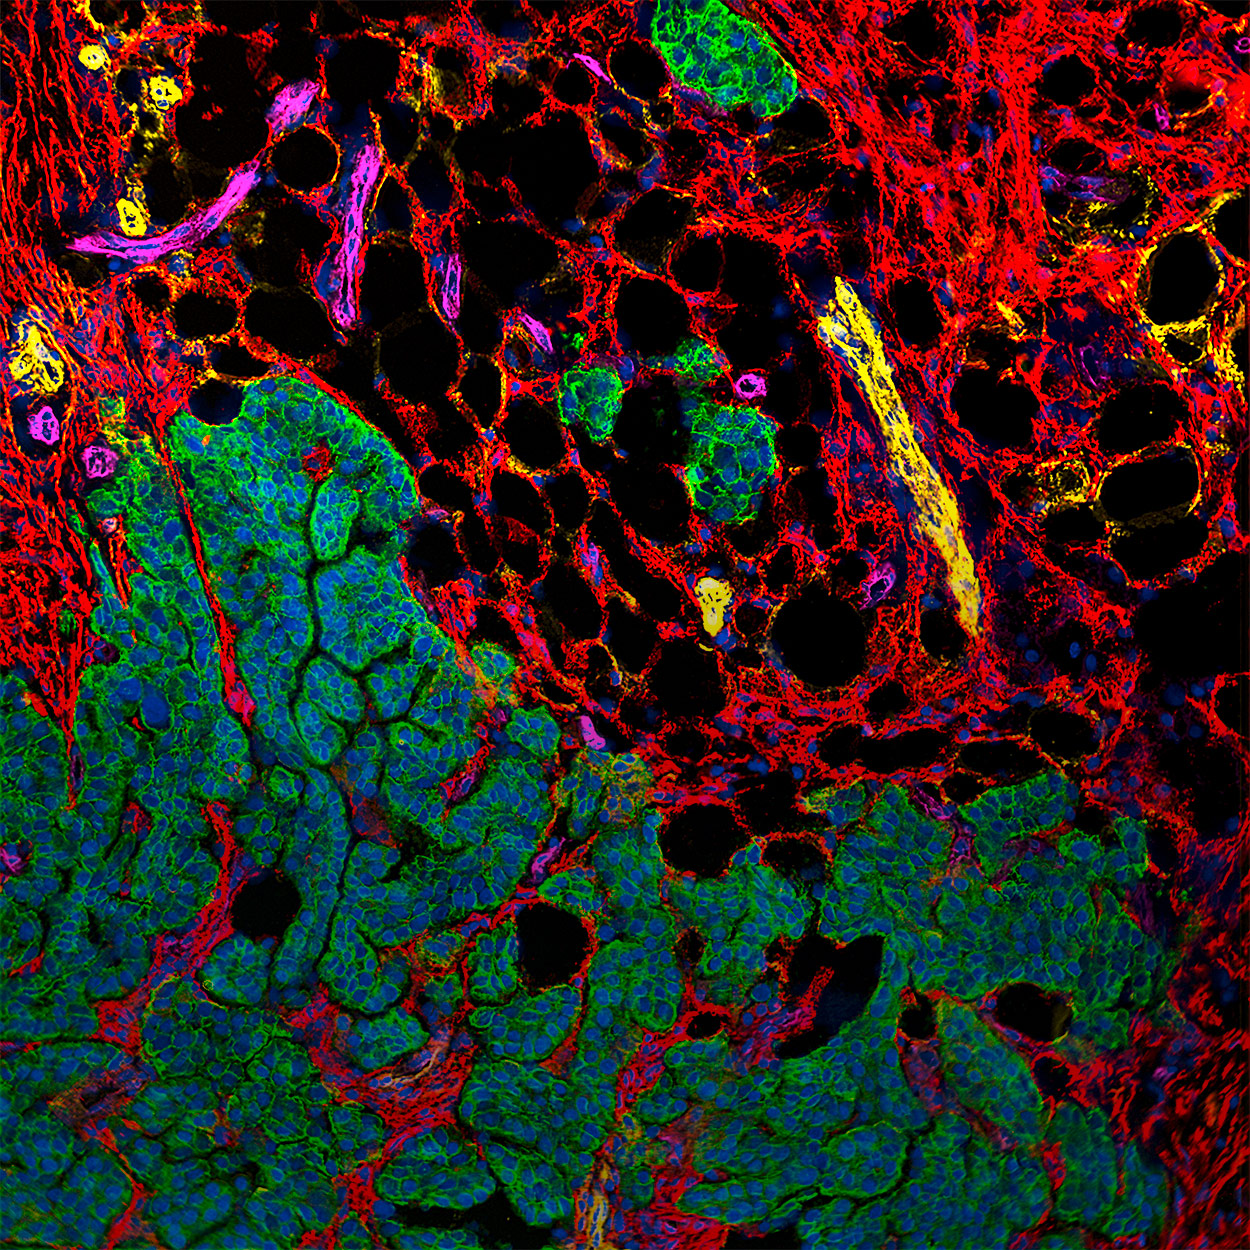 Antibodies for microscopy and imaging